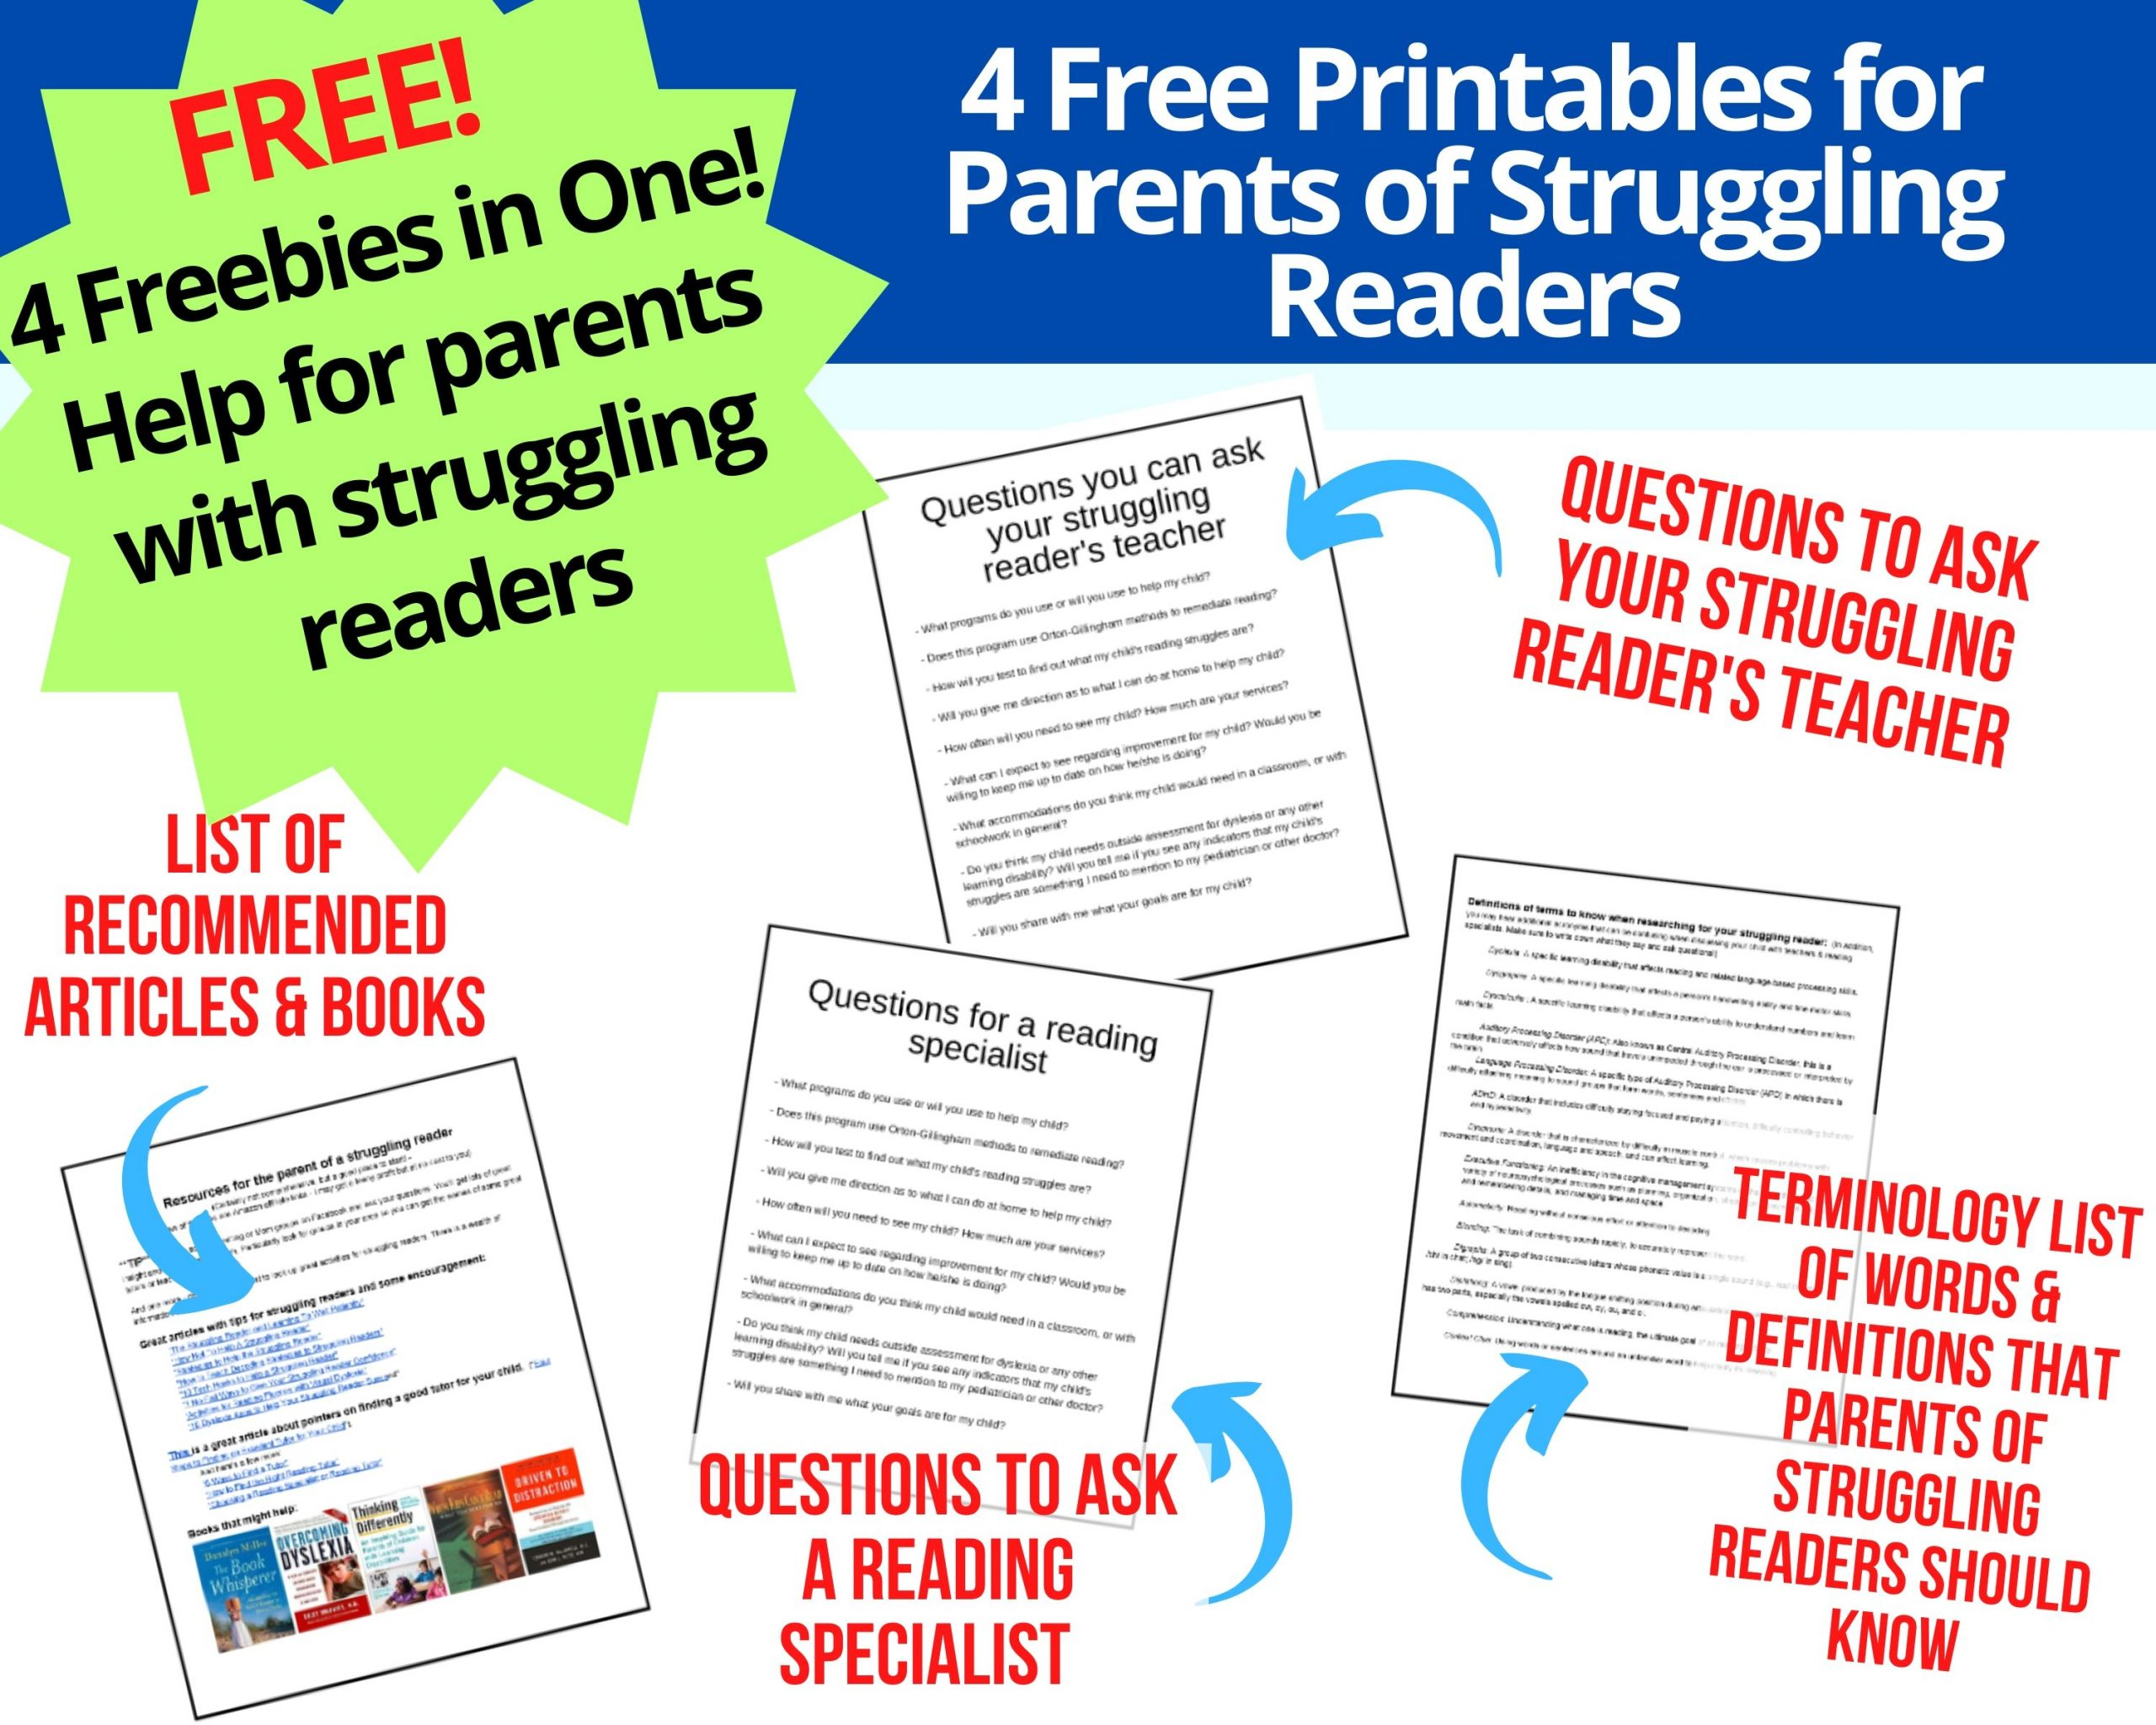 4 in 1 Freebies for Struggling Readers